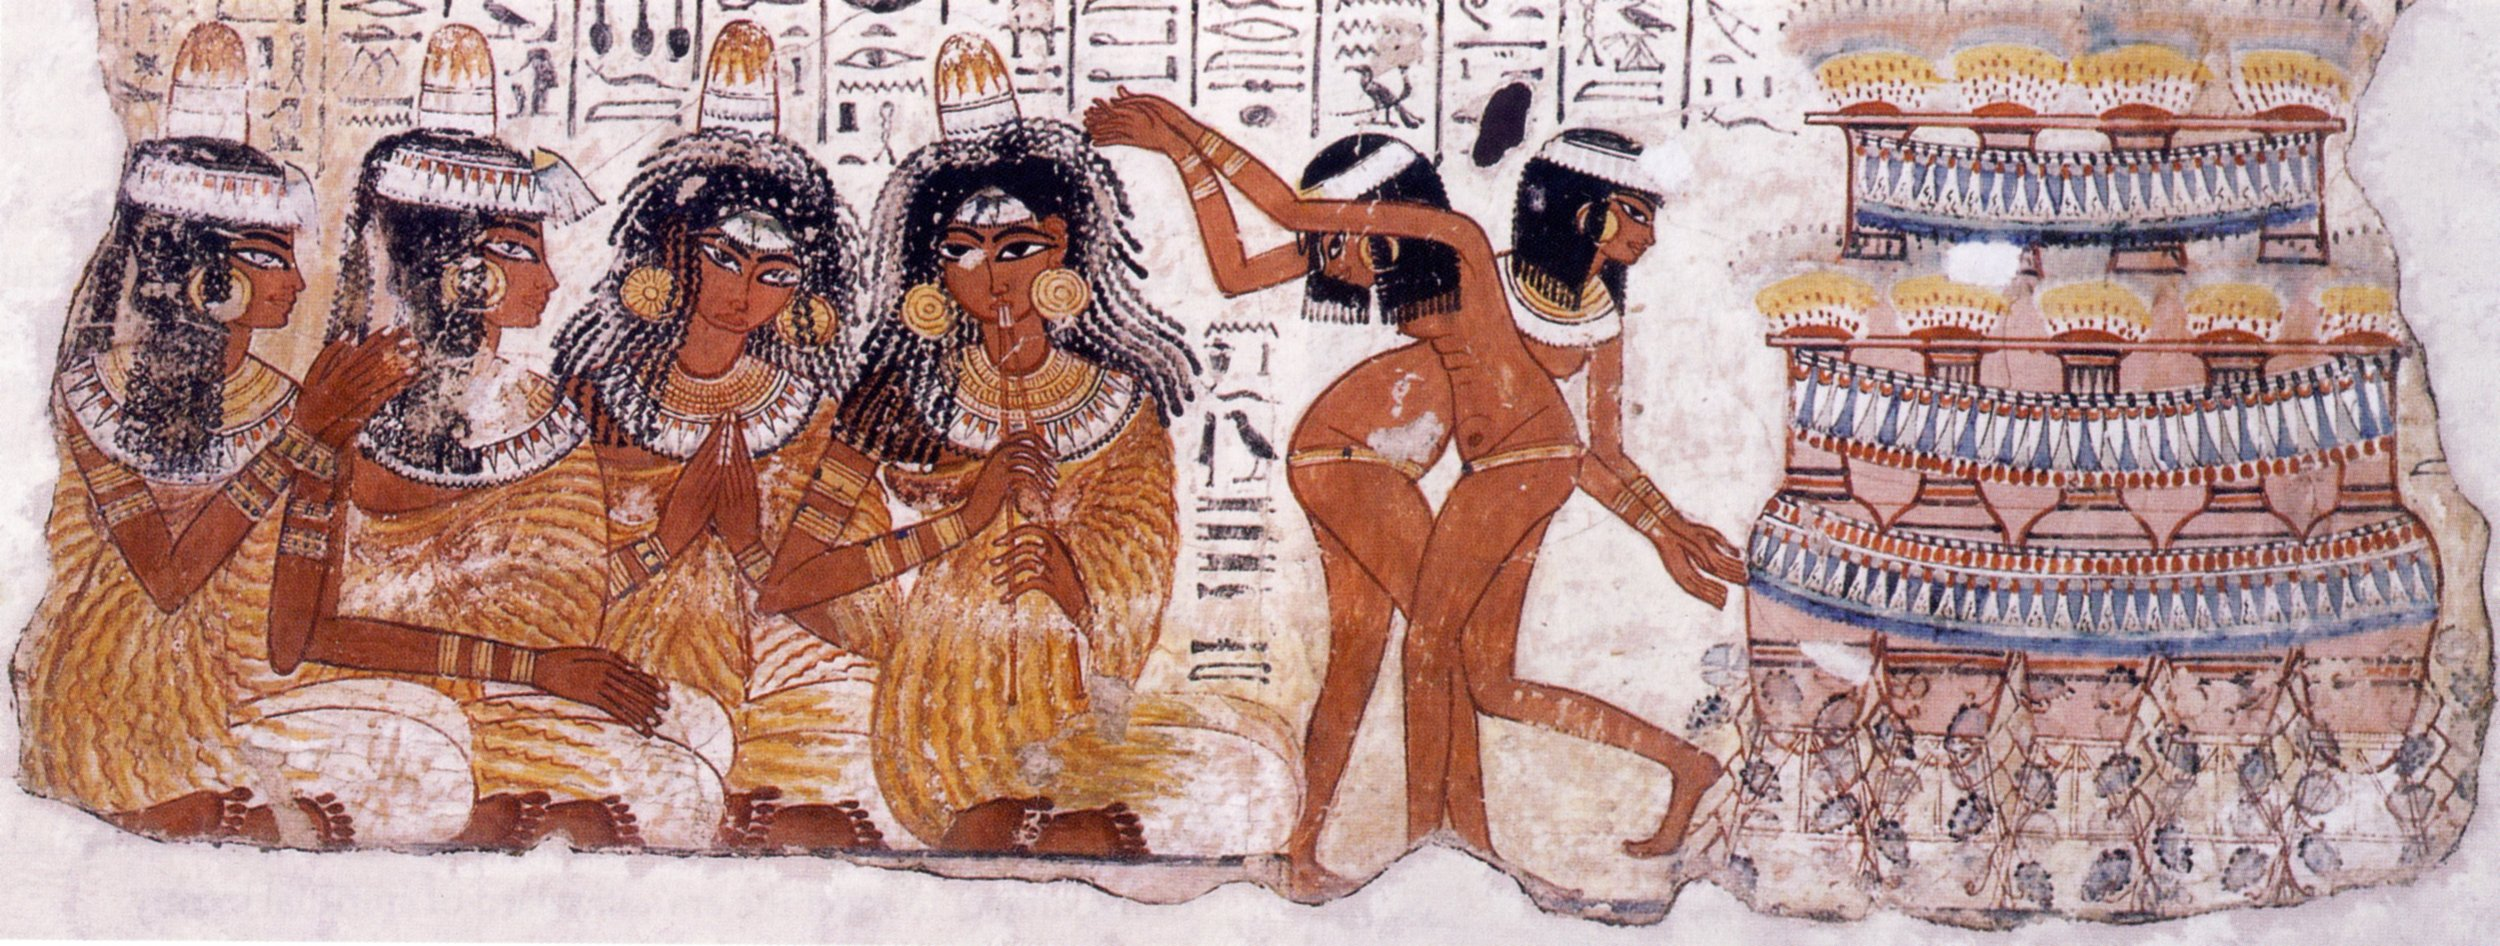 shake it, fellow wives! - Female musicians and dancers, Wikicommons